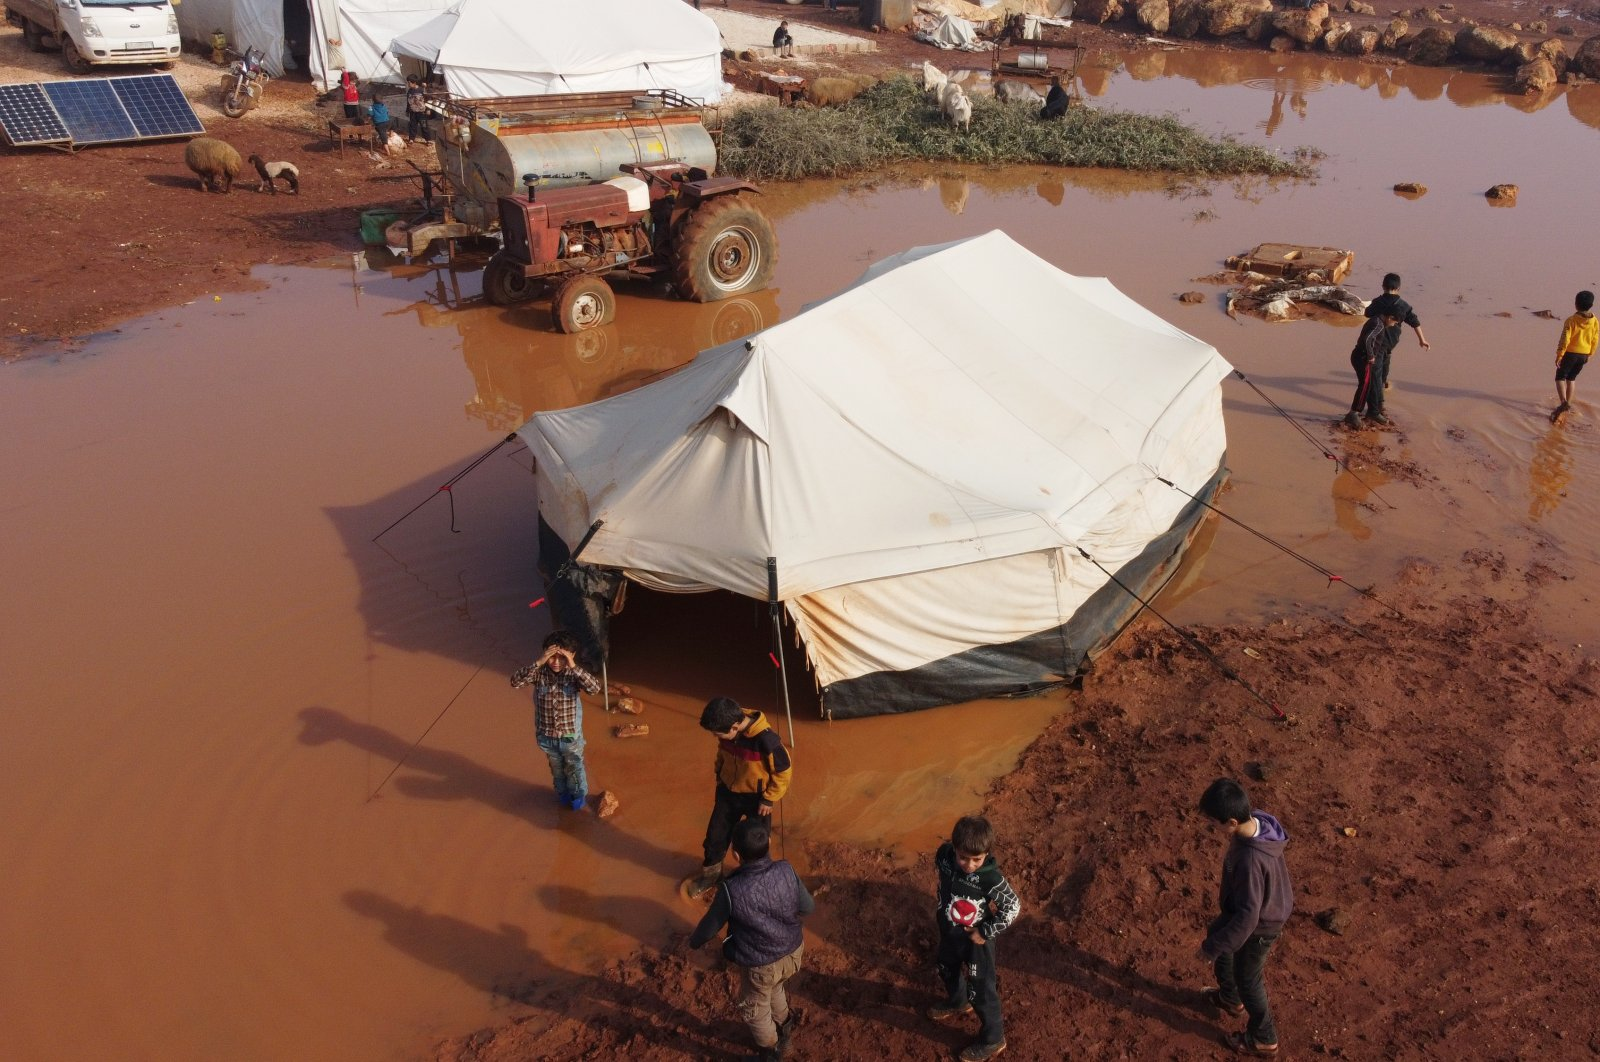 Tents that were flooded by heavy rains are seen in Kafarouk camp in northwestern Syria's Idlib province, Dec. 19, 2020. (AA Photo)